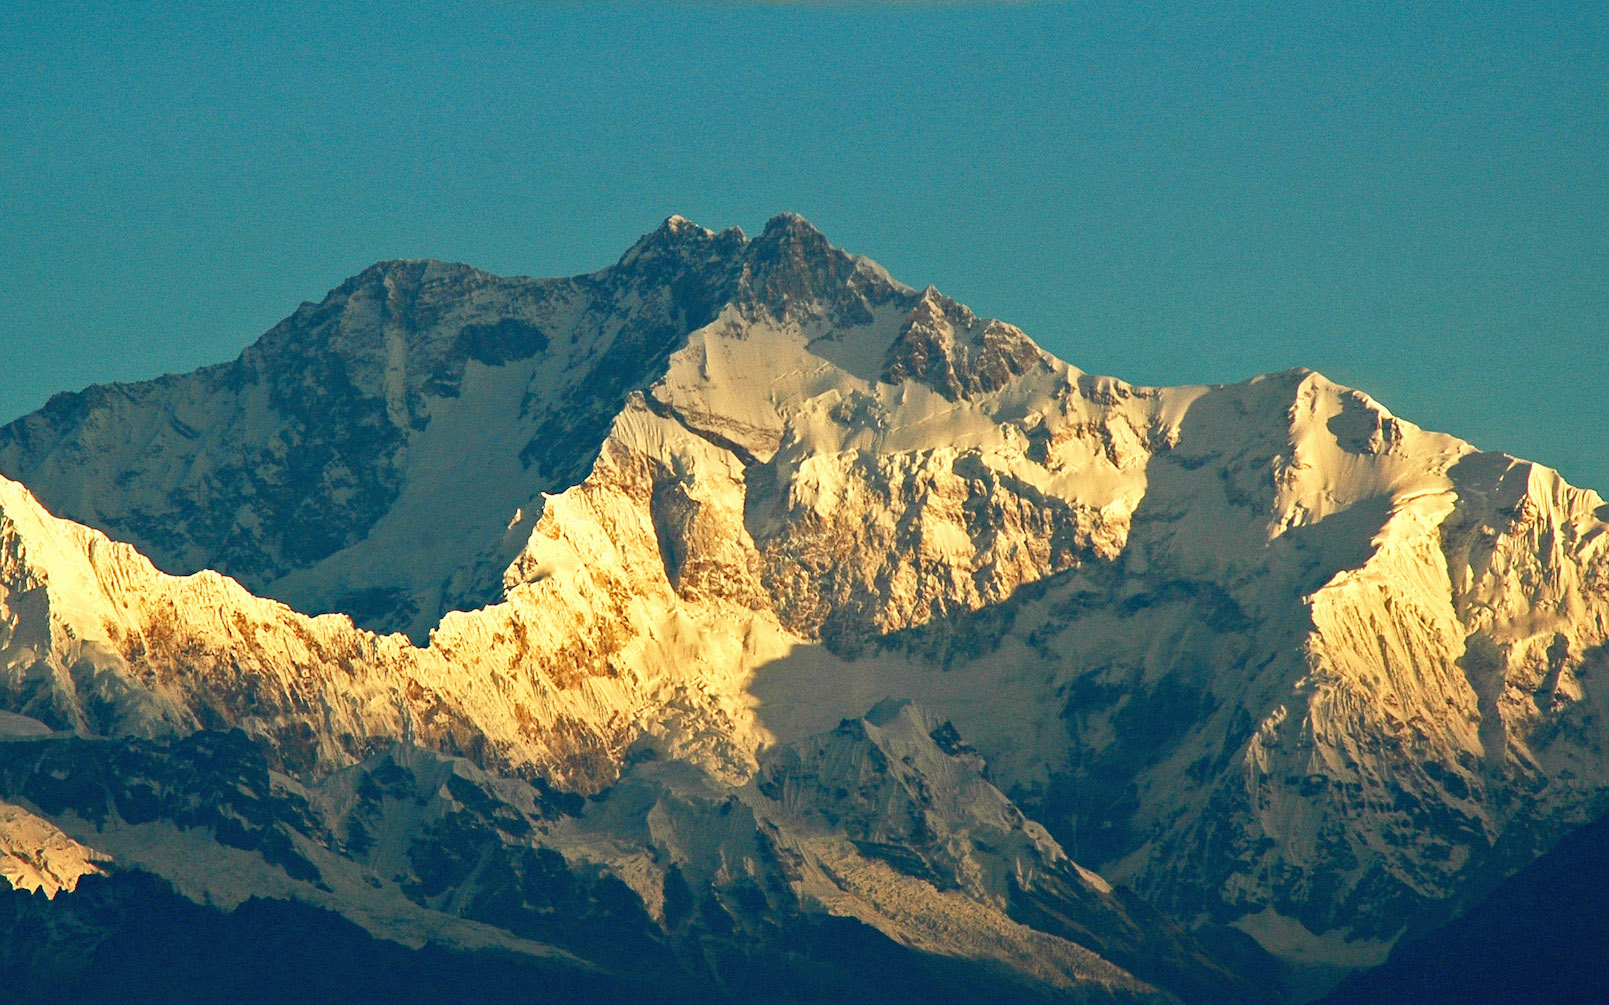 MT. KANGCHENJUNGA EXPEDITION (8586 M)